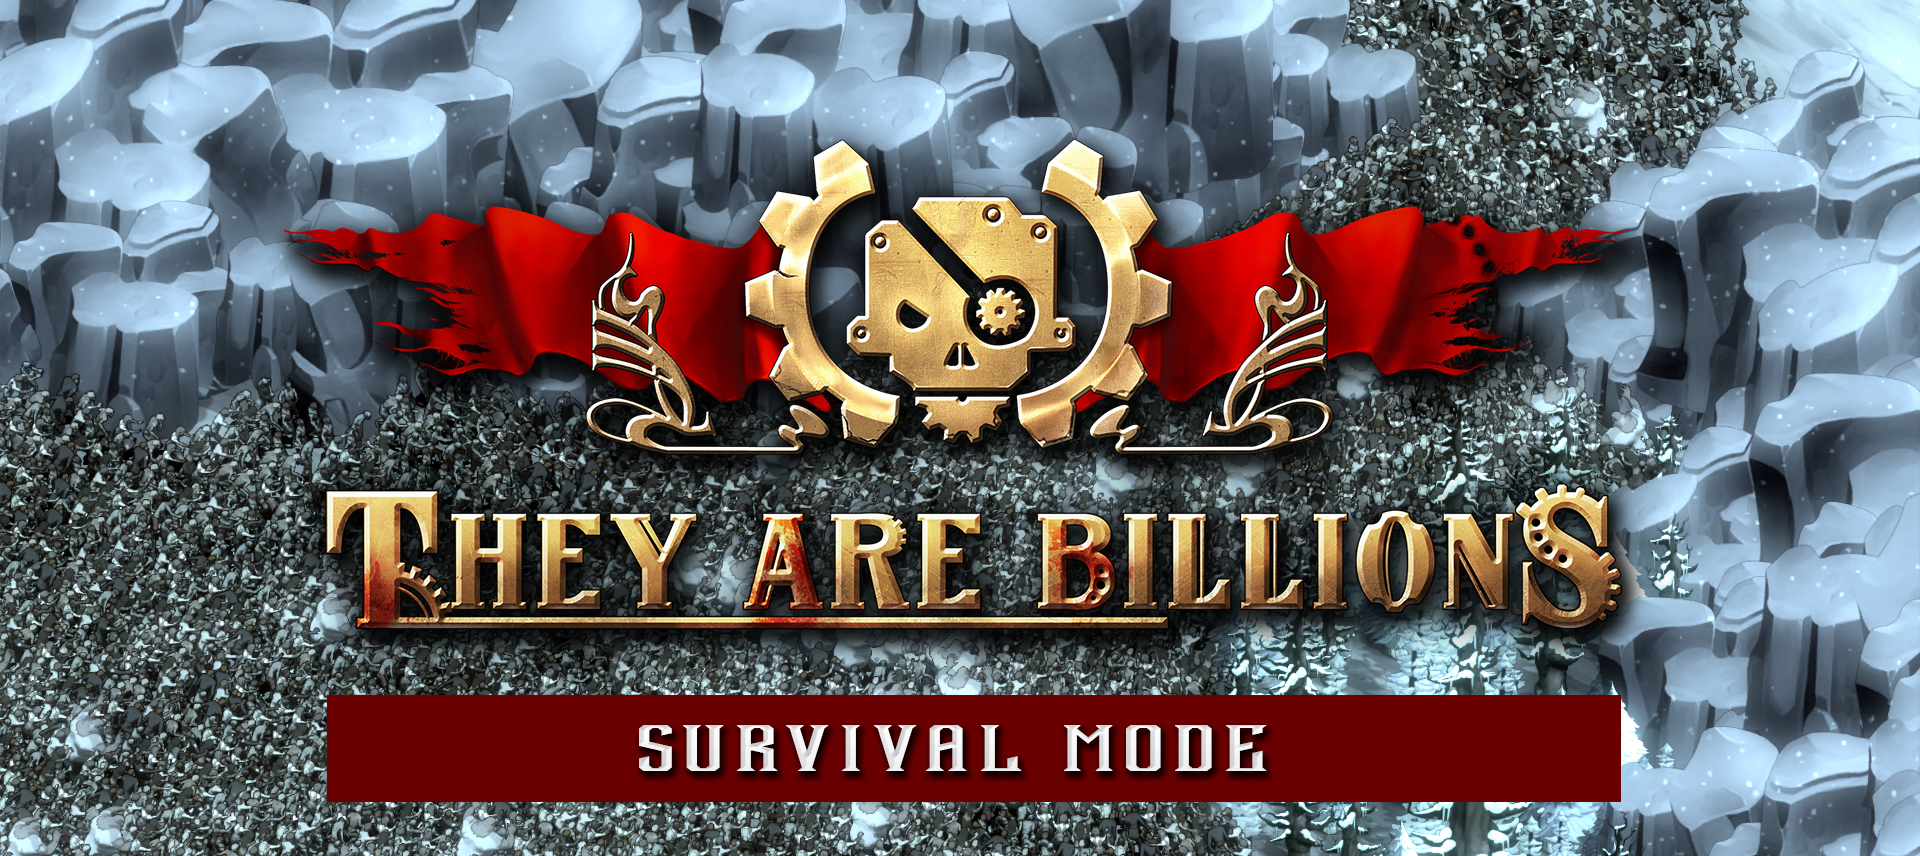 They are billions multi language support spanish available multi language support spanish available m4hsunfo